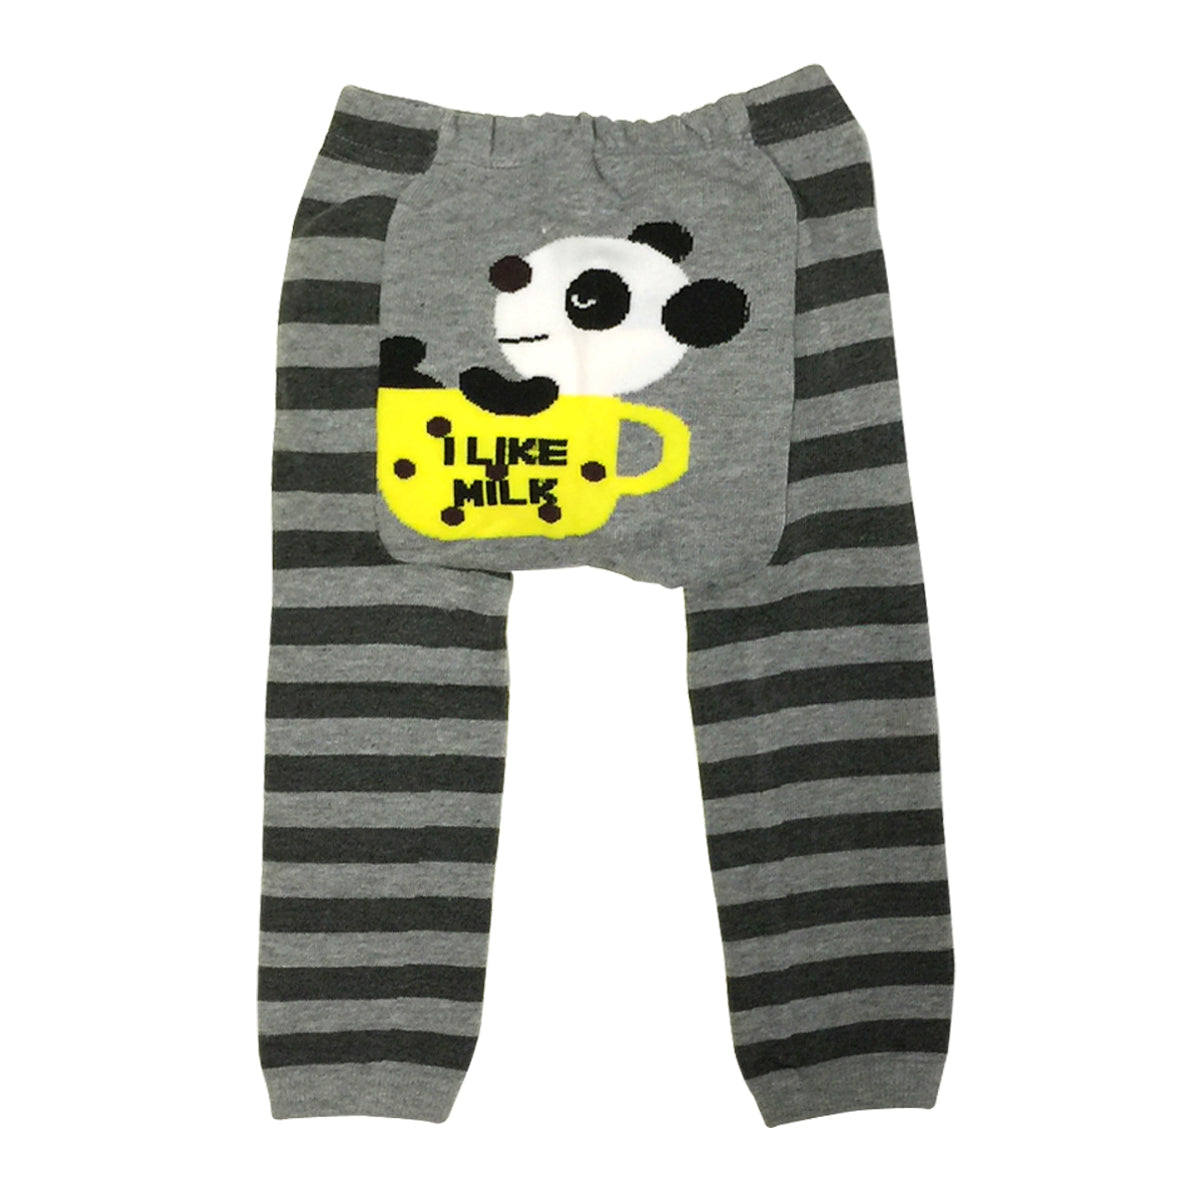 Wrapables Baby & Toddler Busha Leggings, Panda Likes Milk